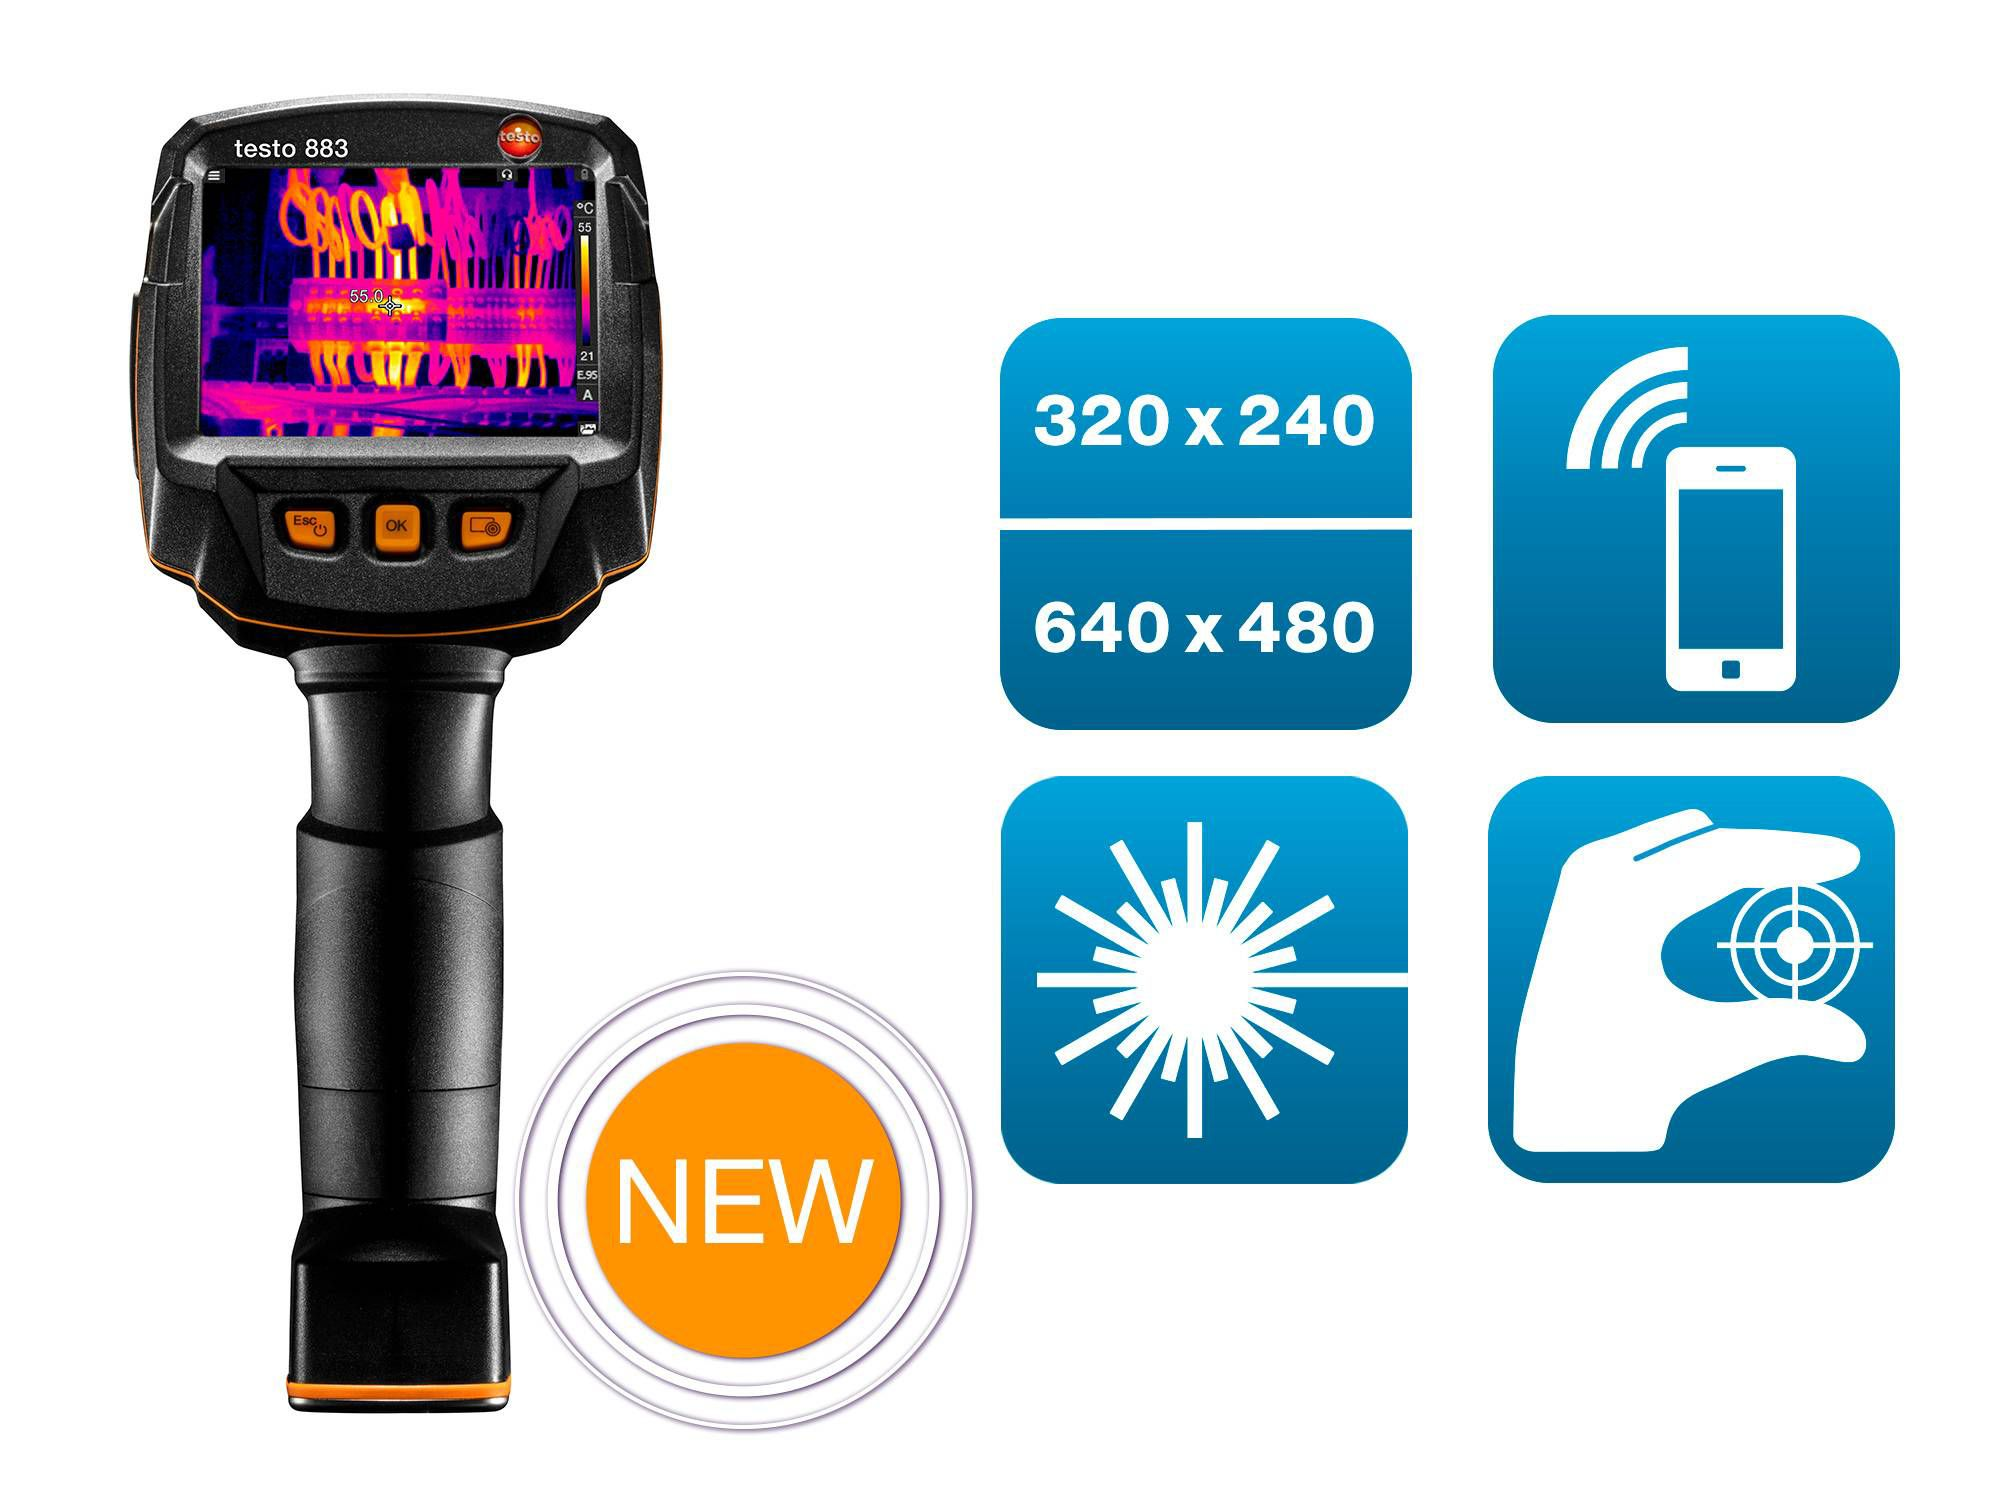 testo 883 kit thermal imager